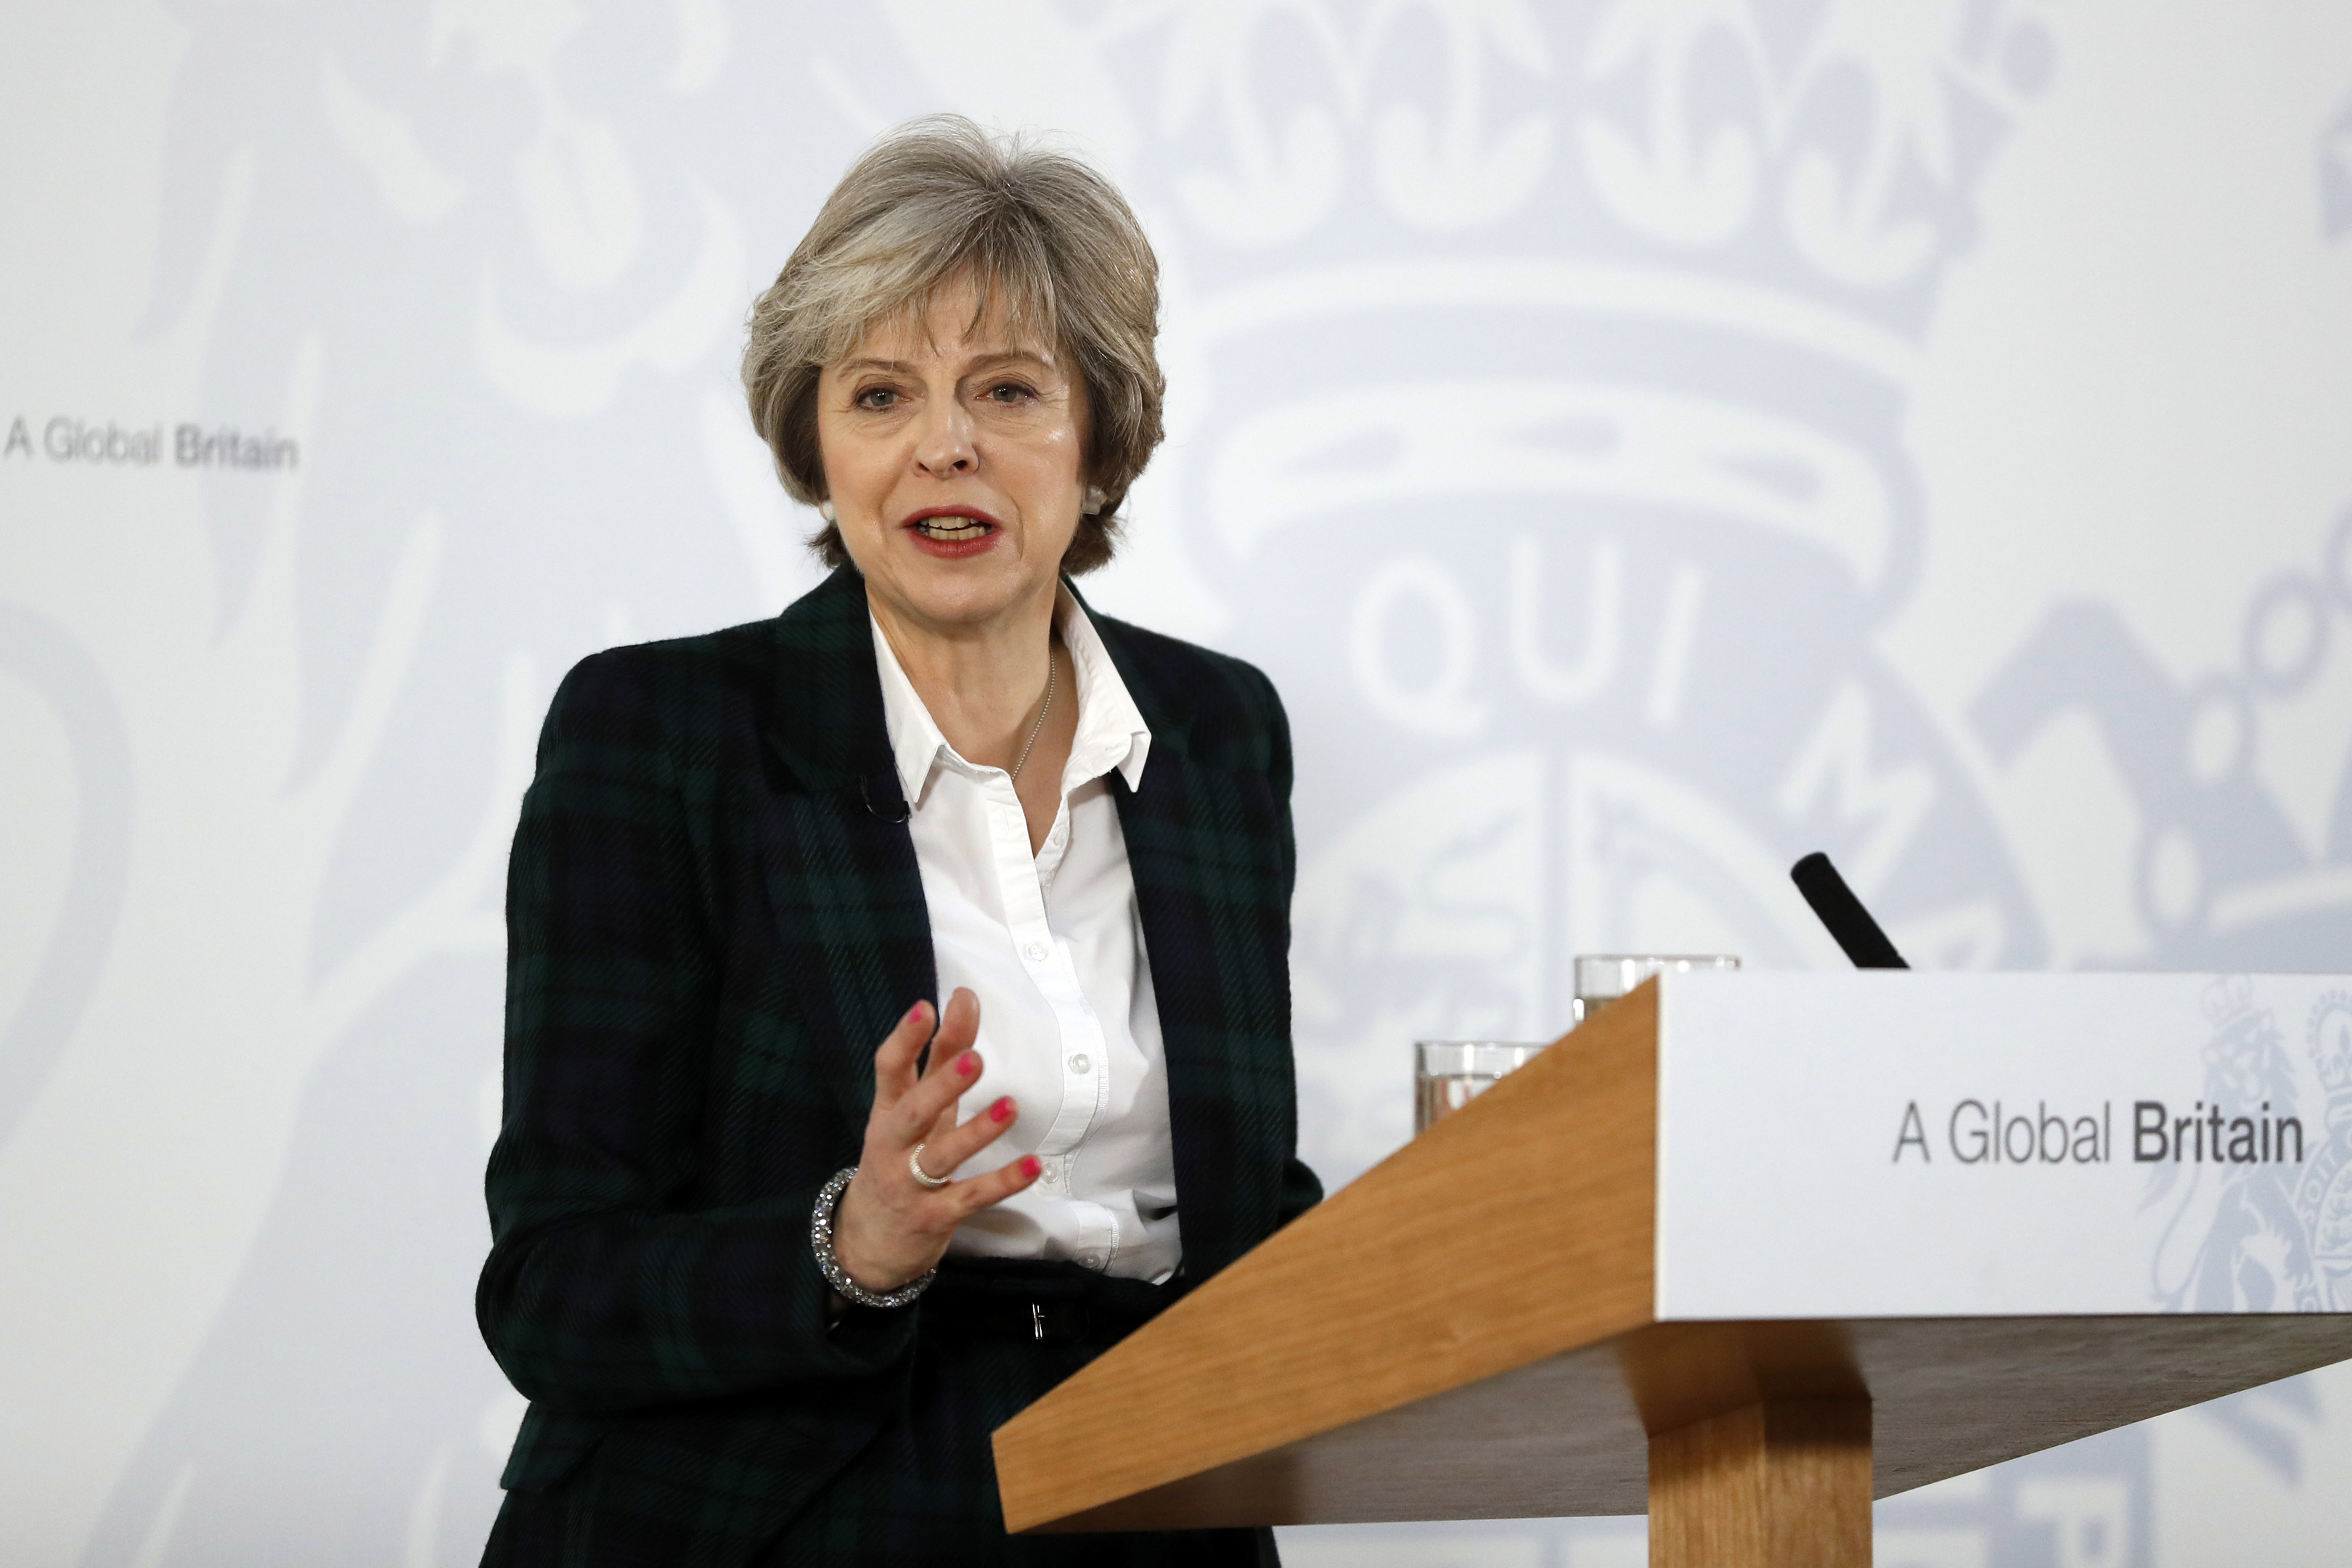 Theresa May delivers her keynote speech on Brexit (Kirsty Wigglesworth - WPA Pool /Getty Images)